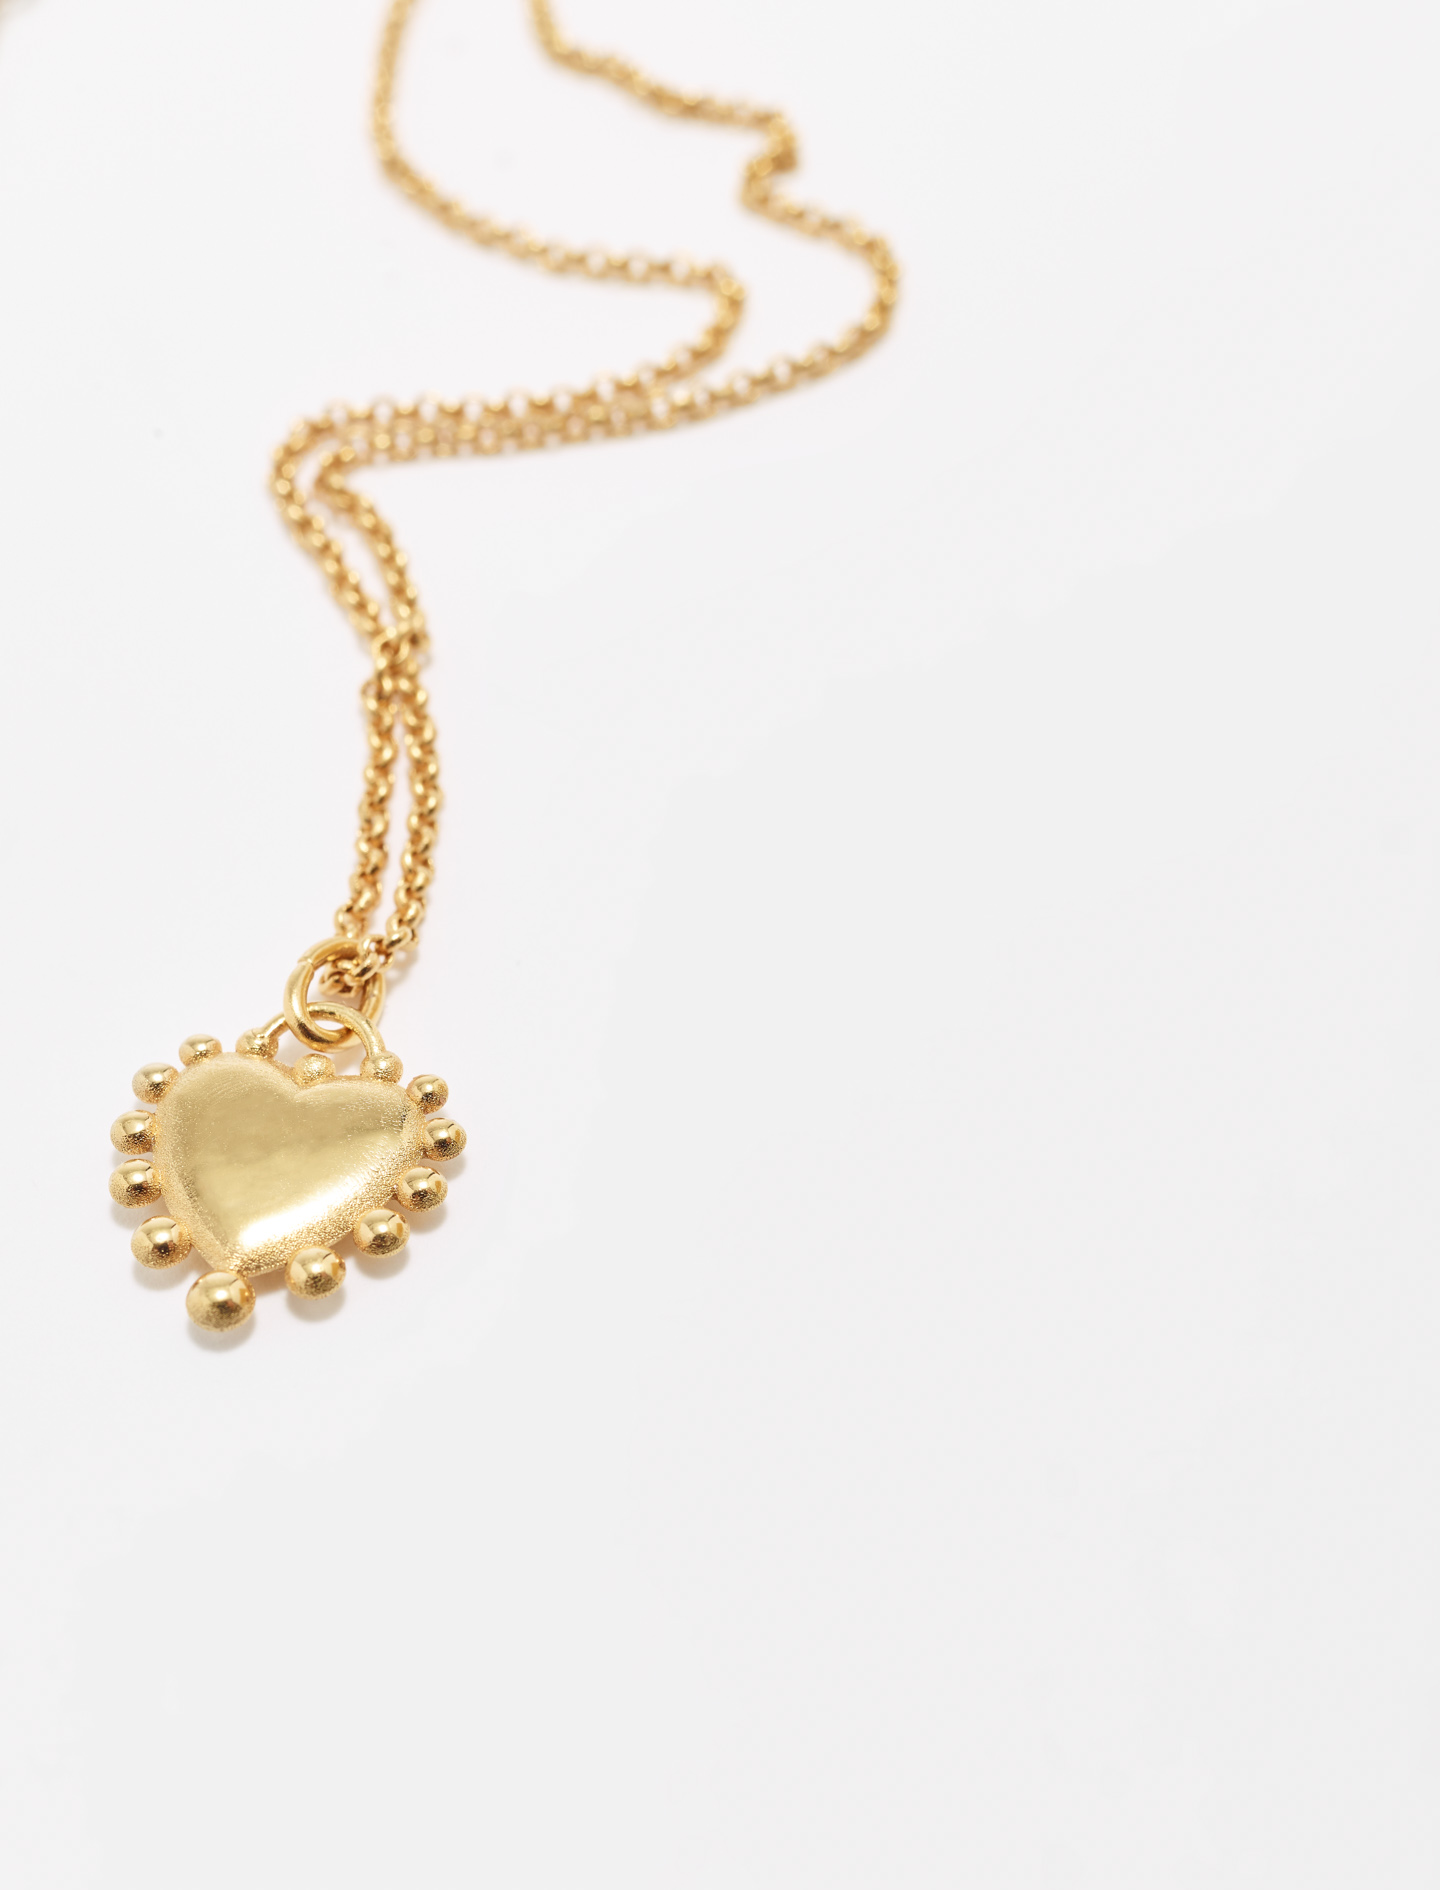 Heart pendant on chain - Gold